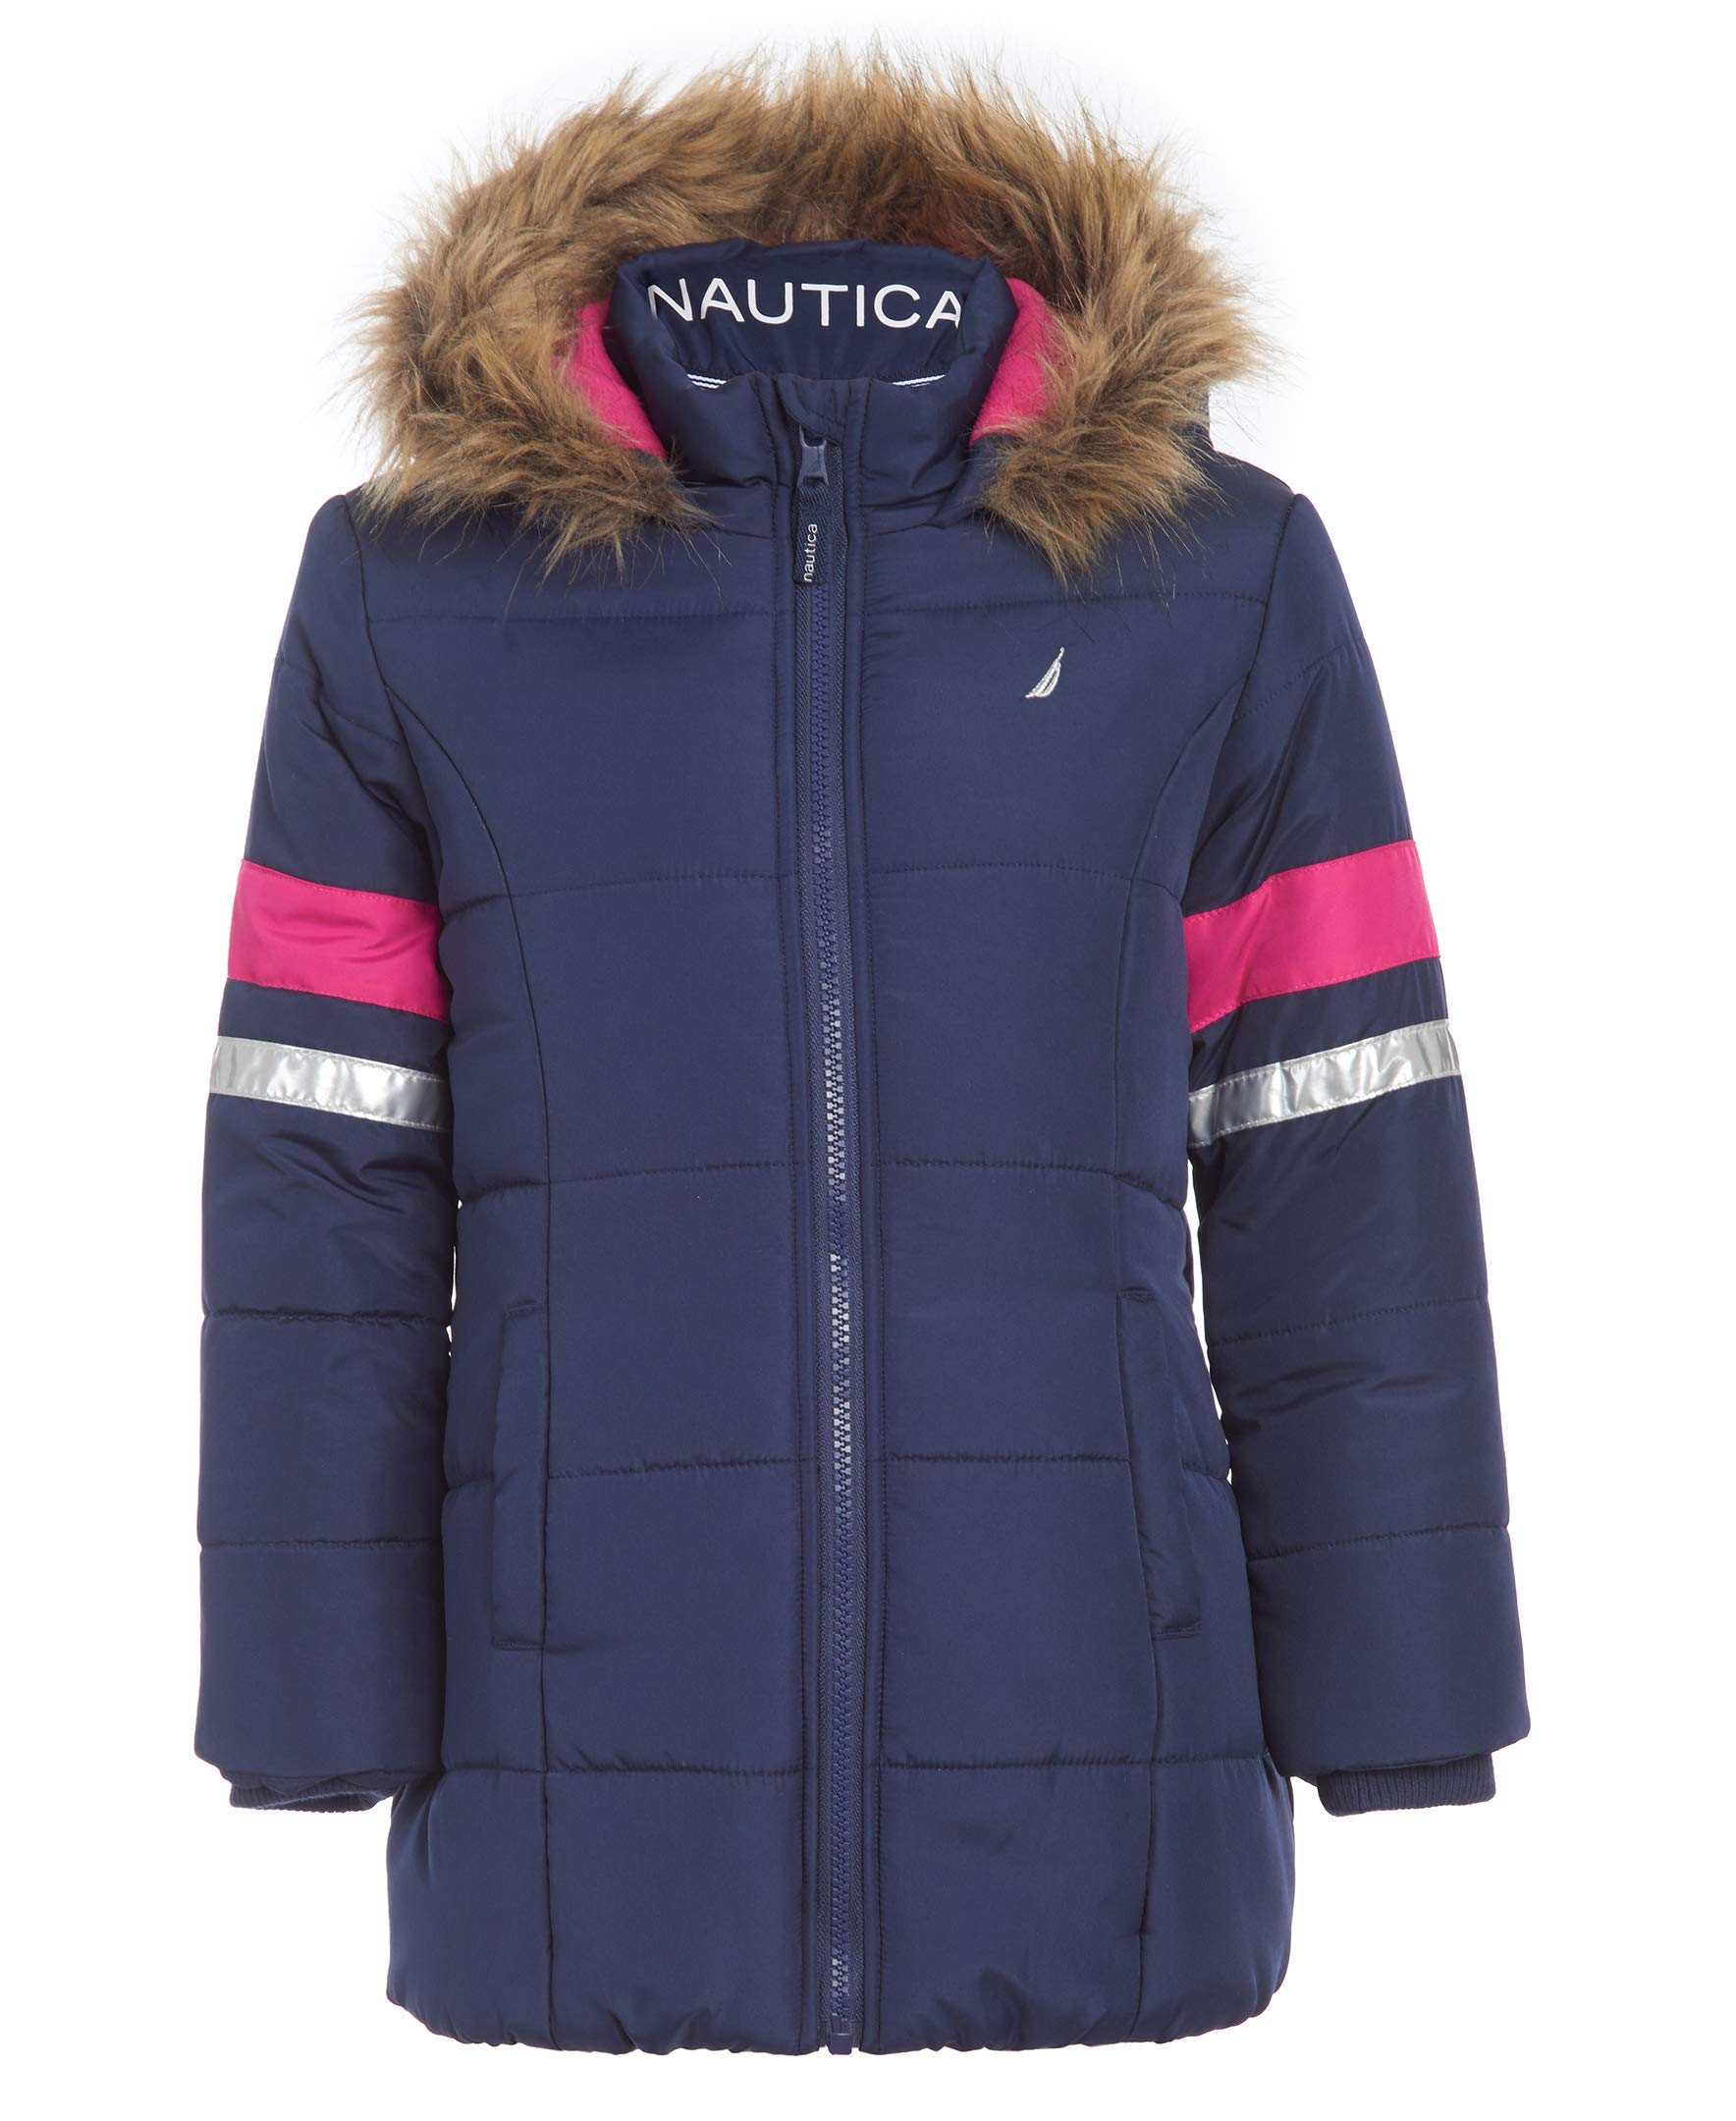 Nautica Toddler Girls Heavy Weight Long Length Jacket with Faux Fur Hood, Navy, 4T by Nautica